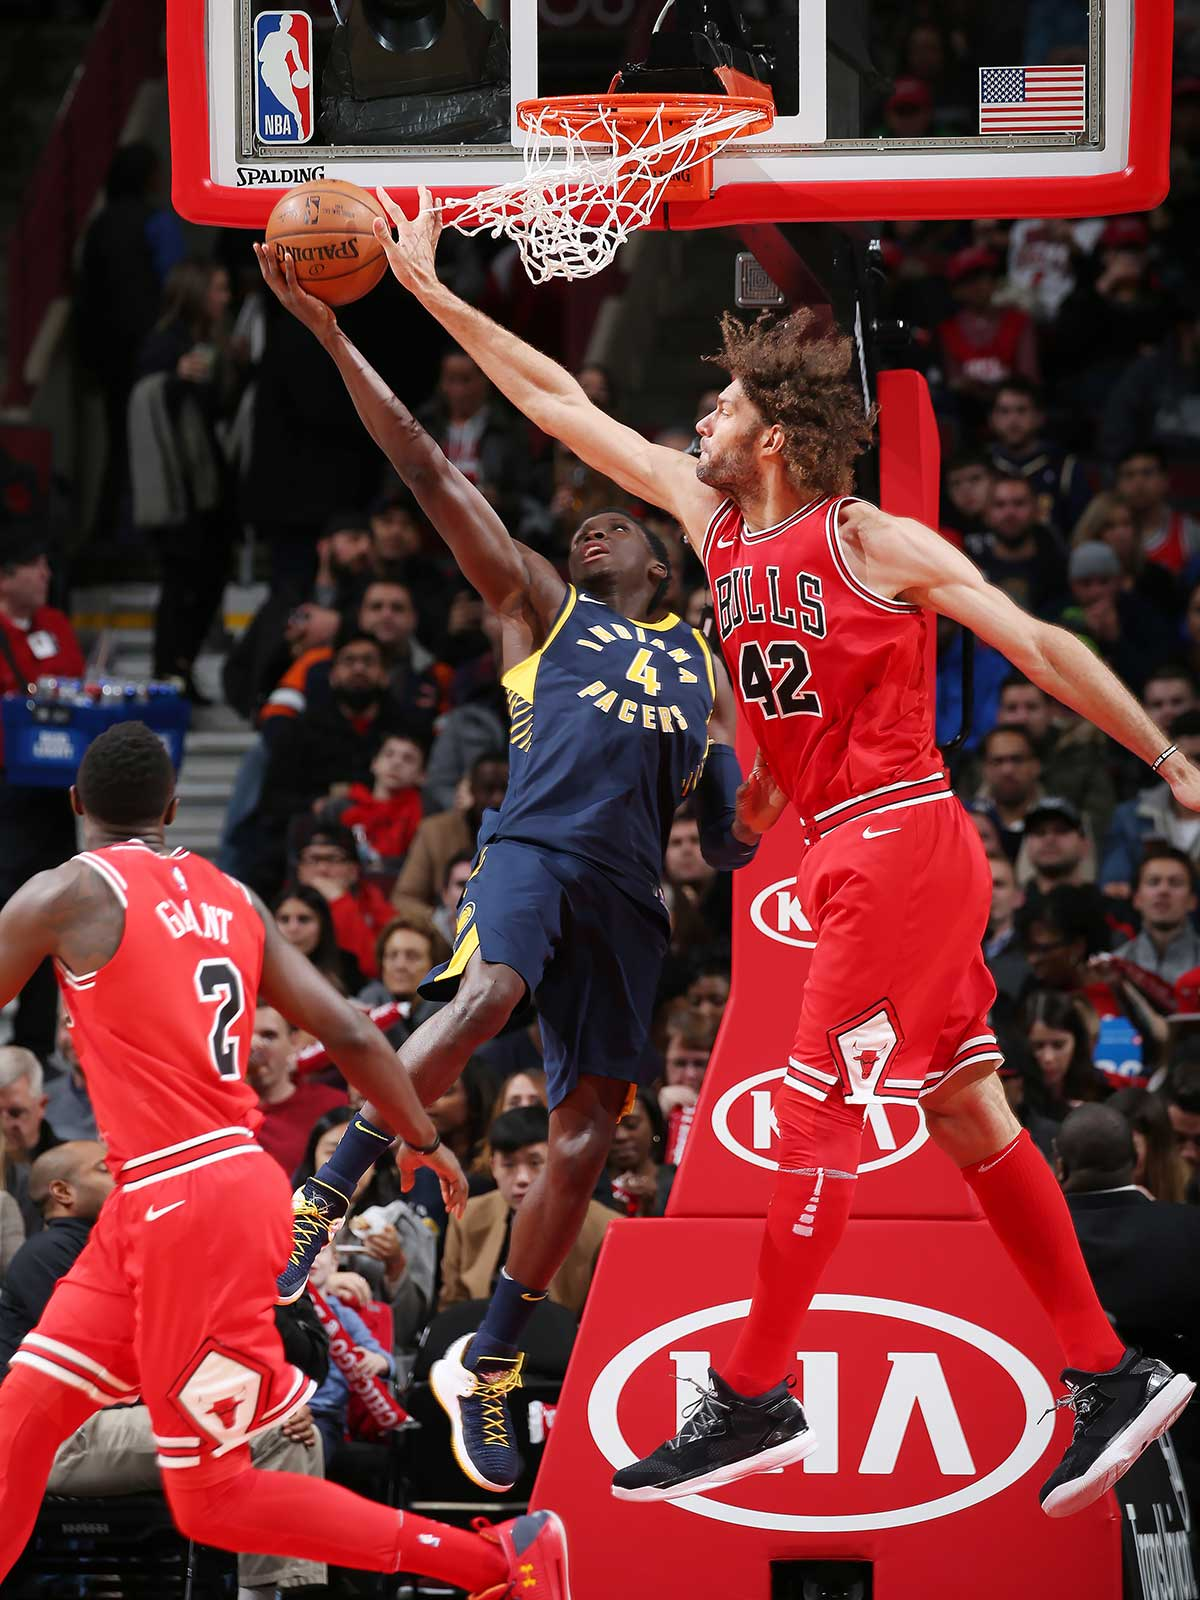 Victor Oladipo #4 of the Indiana Pacers drives to the basket against Robin Lopez #42 of the Chicago Bulls on November 10, 2017 at the United Center in Chicago, Illinois.